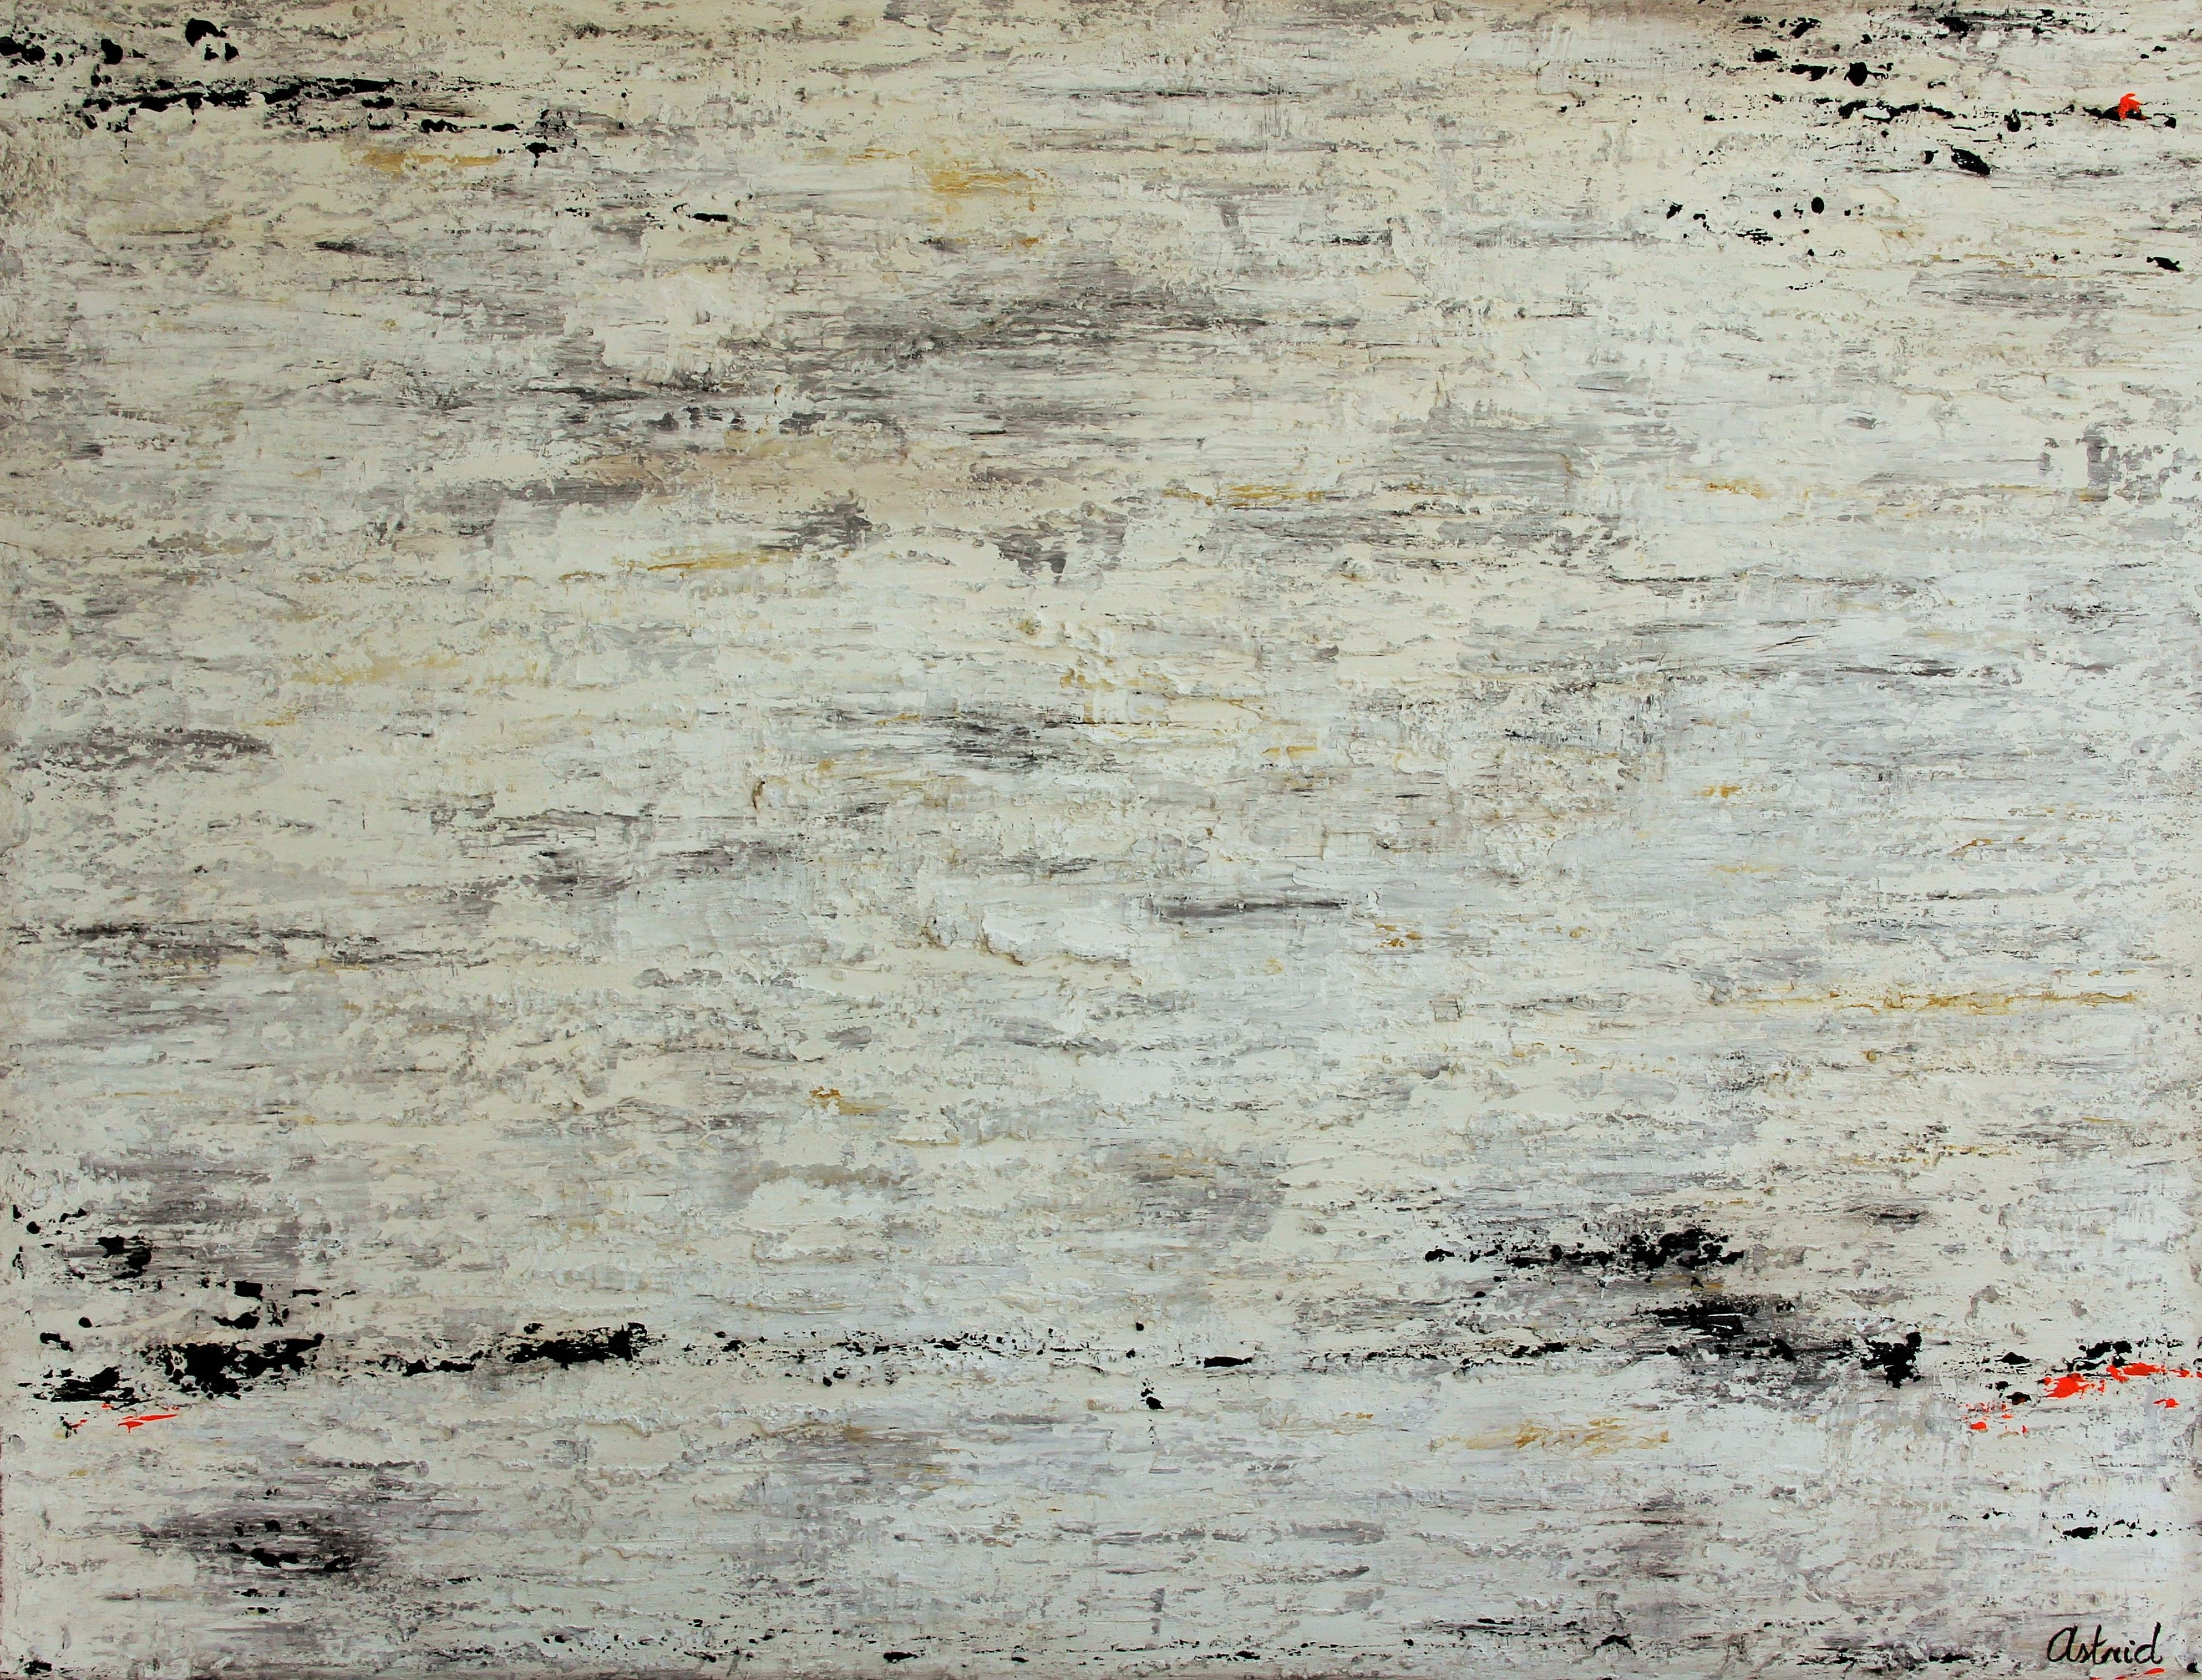 'Sobriety' 140 x 180 cm Mixed Media on canvas Texture